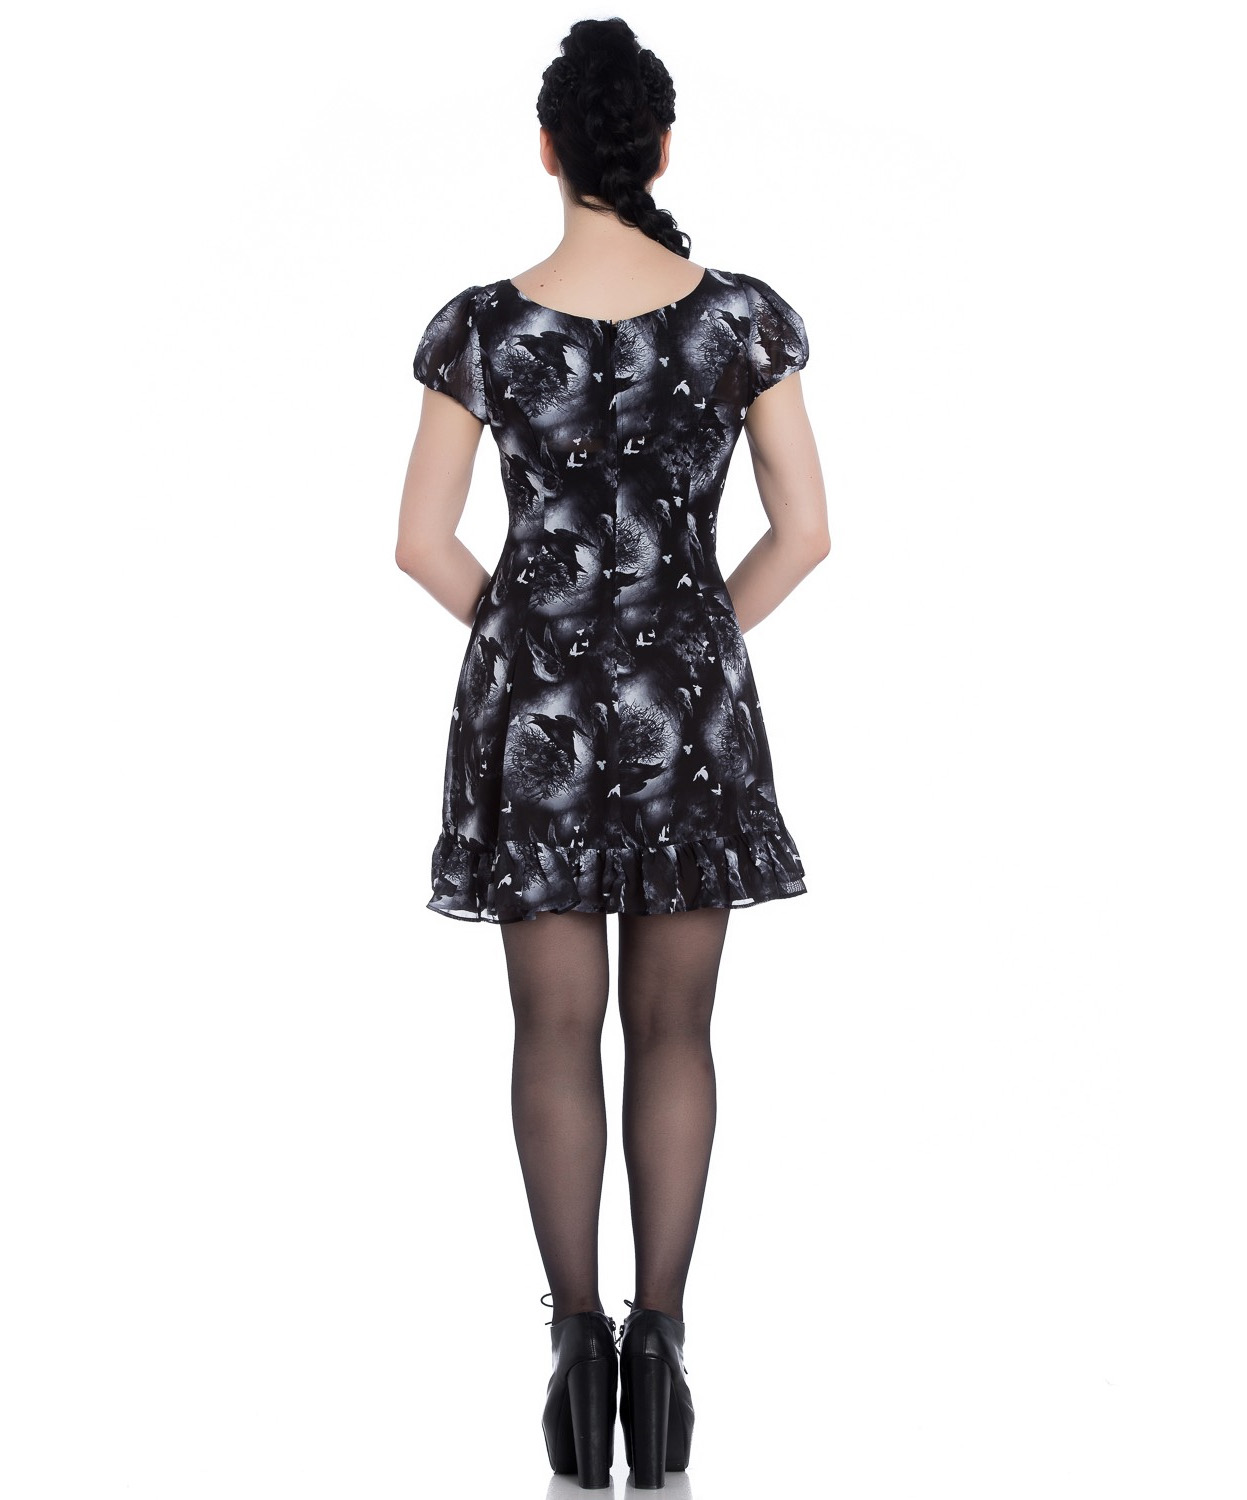 Hell-Bunny-Alchemy-Gothic-Black-Skater-Mini-Dress-ASH-Crows-Skulls-All-Sizes thumbnail 5